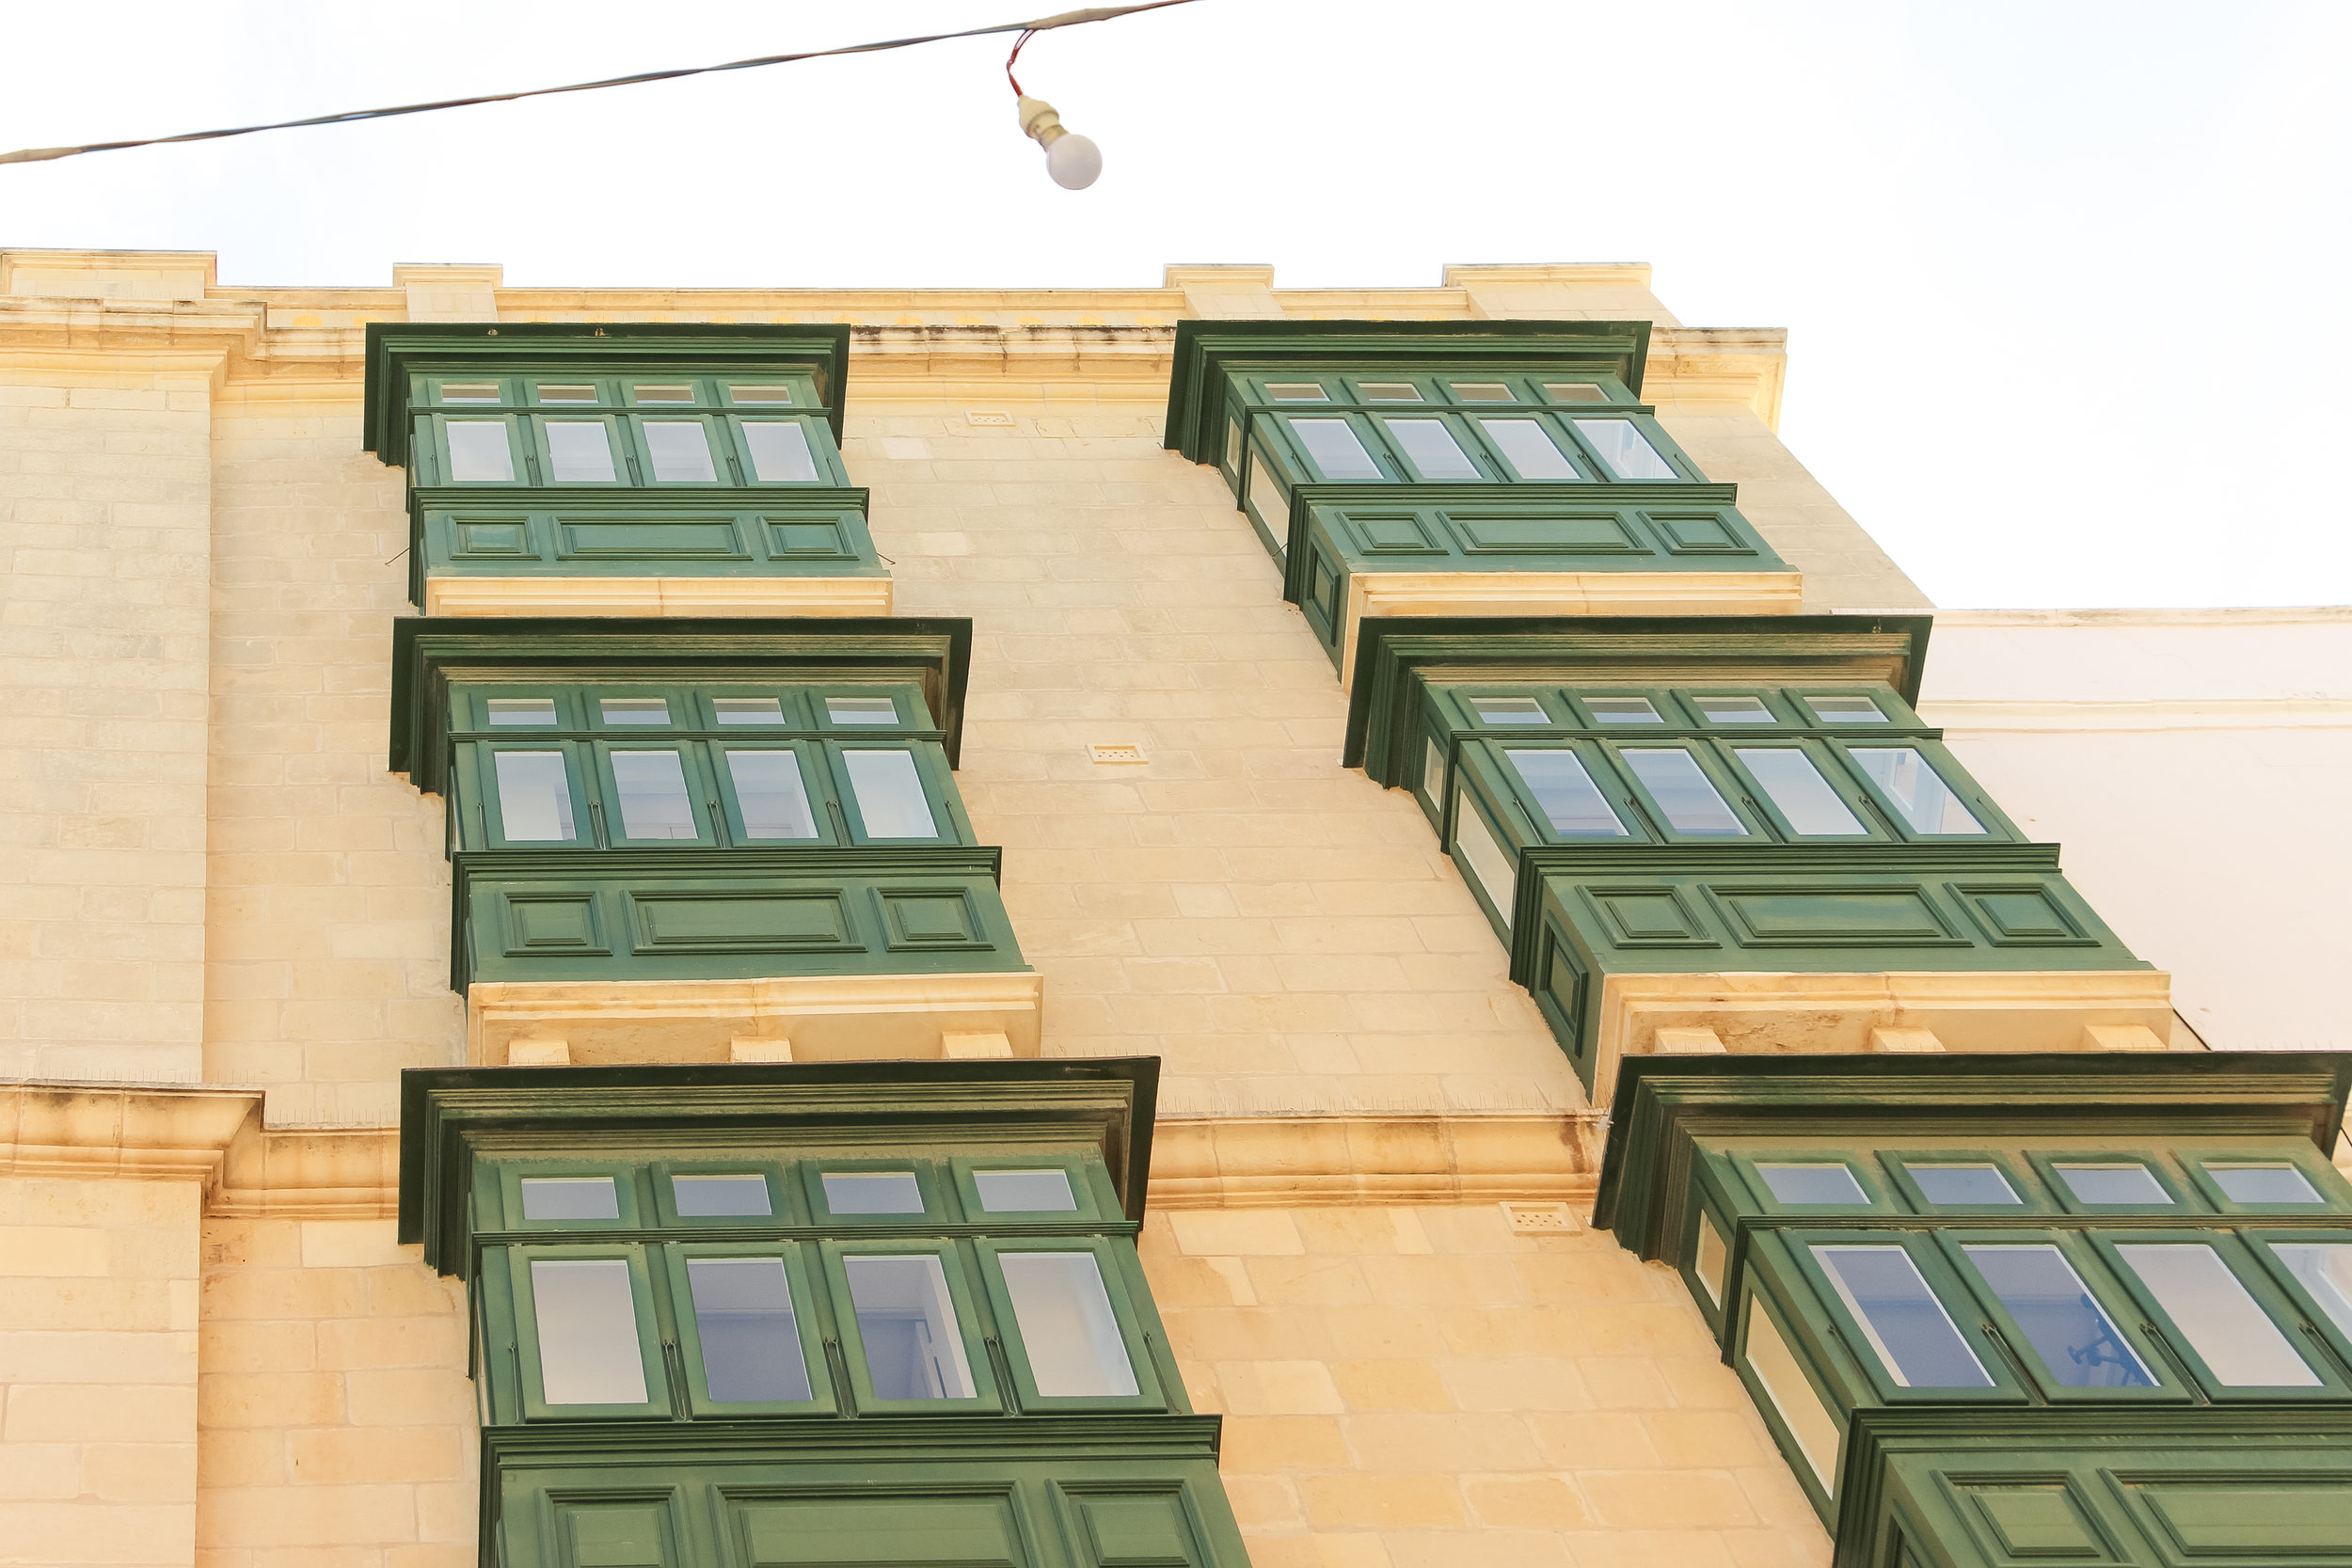 Maltese windows   House of Malta, Green Traditional Enclosed Wooden Balcony   Old Town of Valletta   - Thinking About Appreciation For Quality In Malta   Malta, Europe   DoLessGetMoreDone.com   - Canon Minimal Travel Documentary Photography - search for Liveability   Sustainability